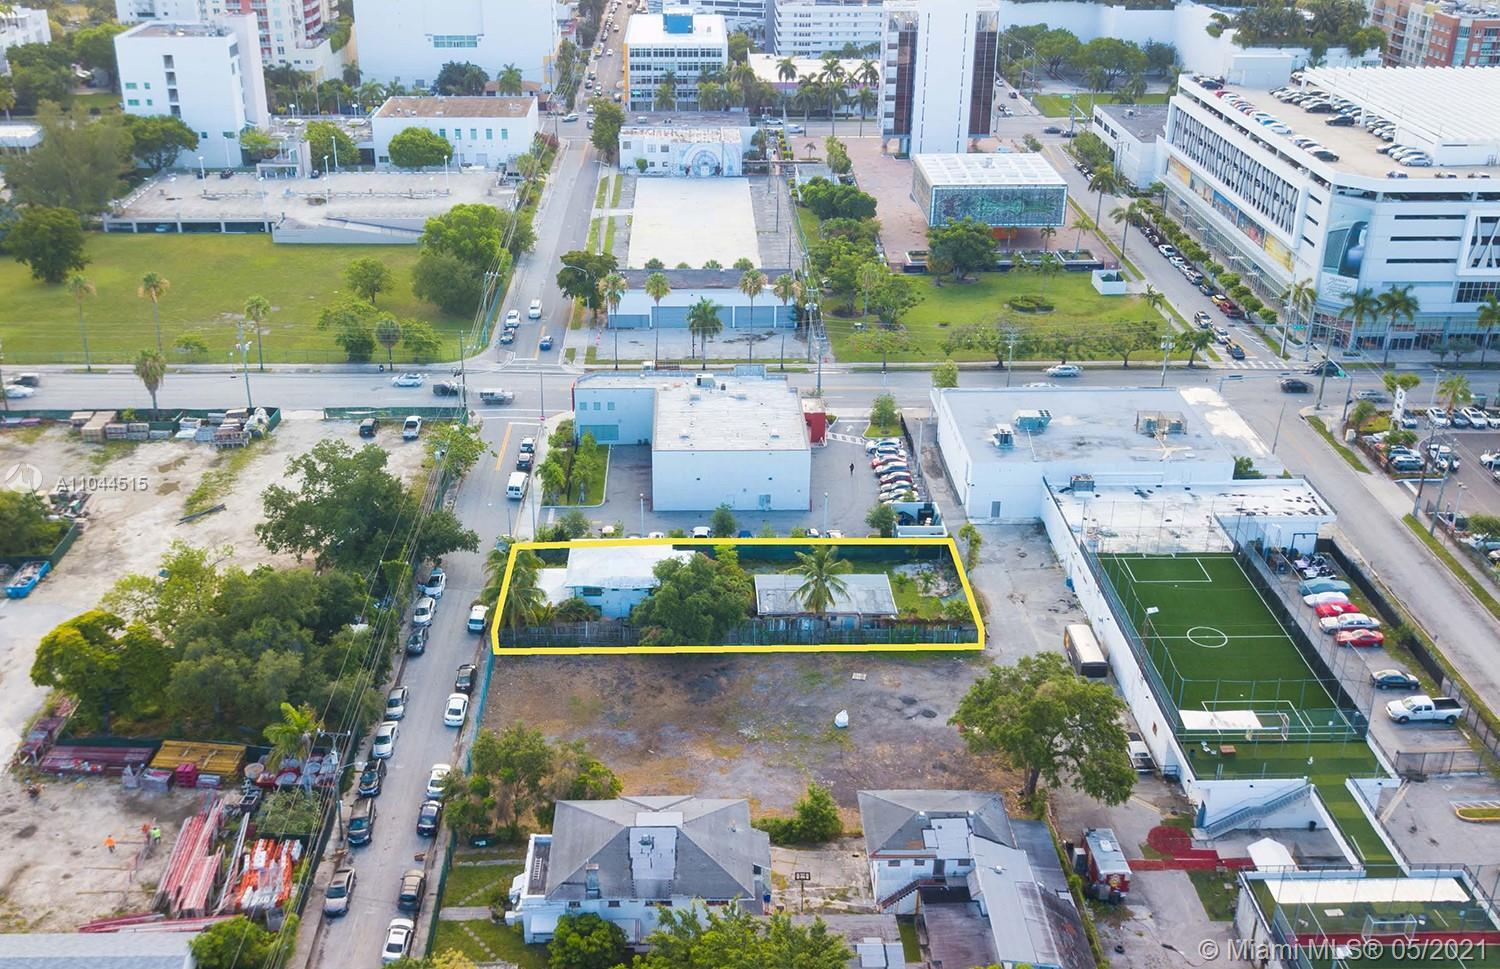 APEX Capital Realty is proud to present an urban infill parcel of 8,475 Sq. Ft. in the popular Edgew